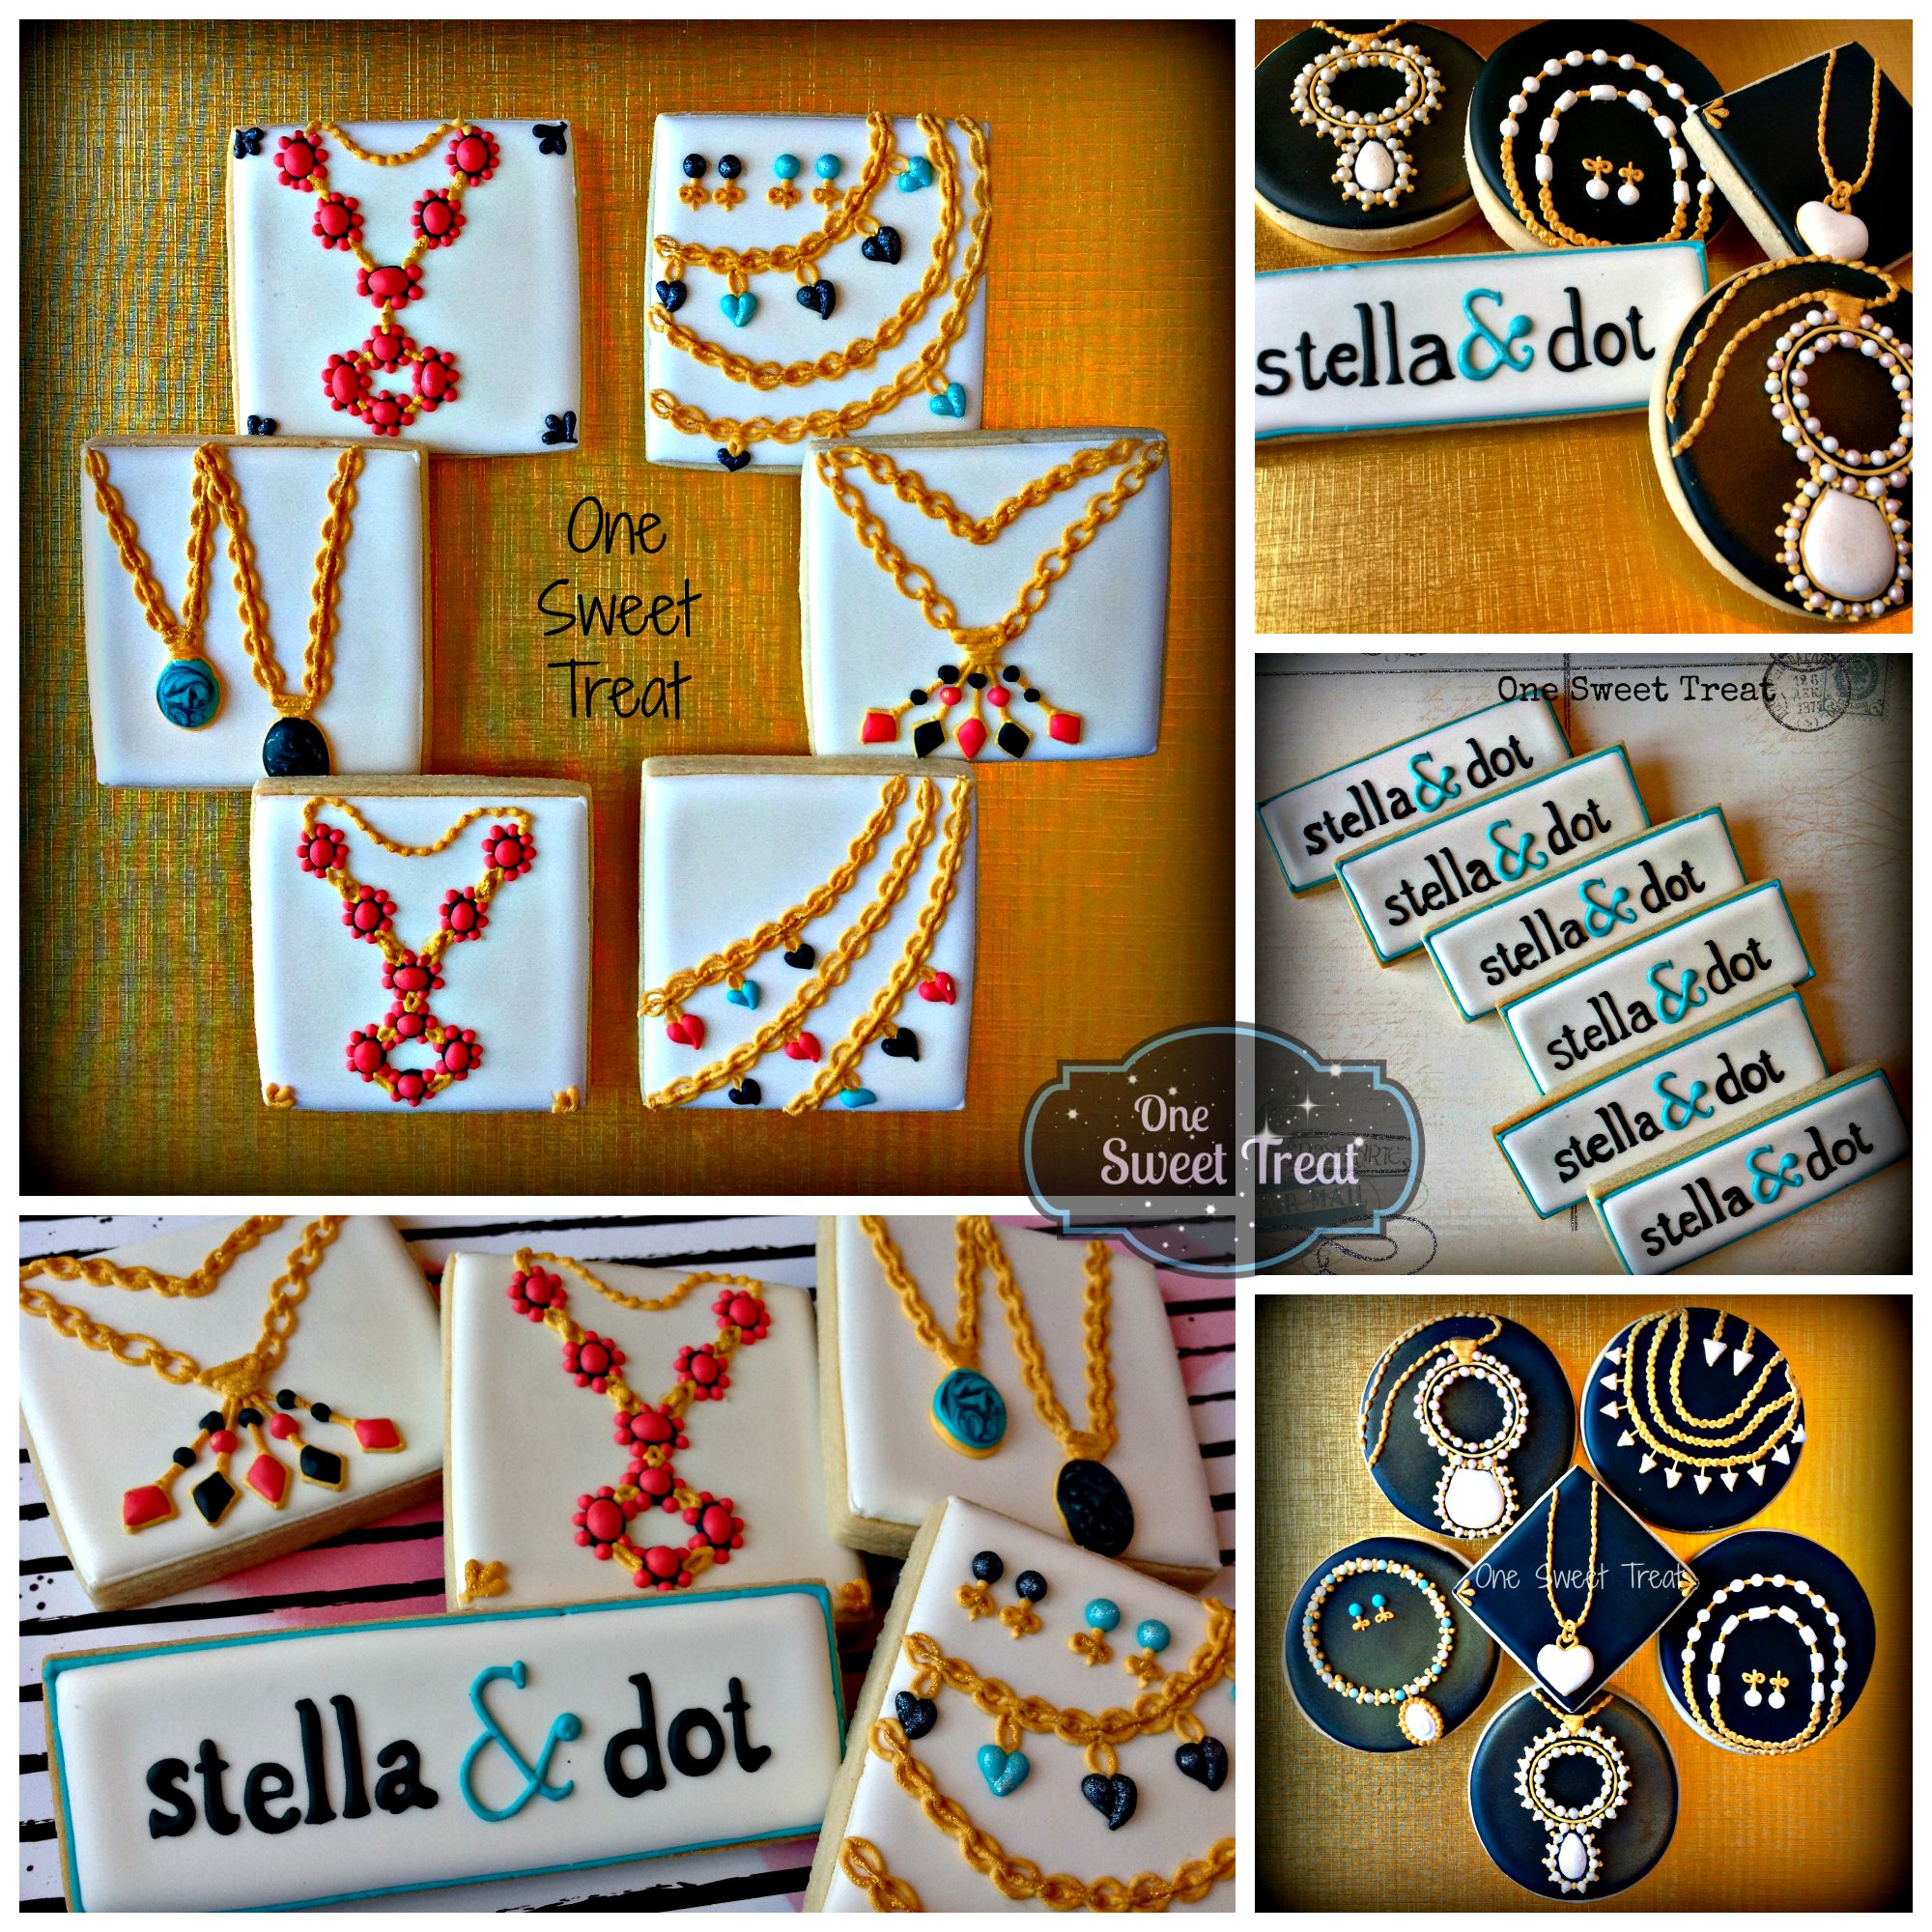 jewelry S&D Collage.jpg